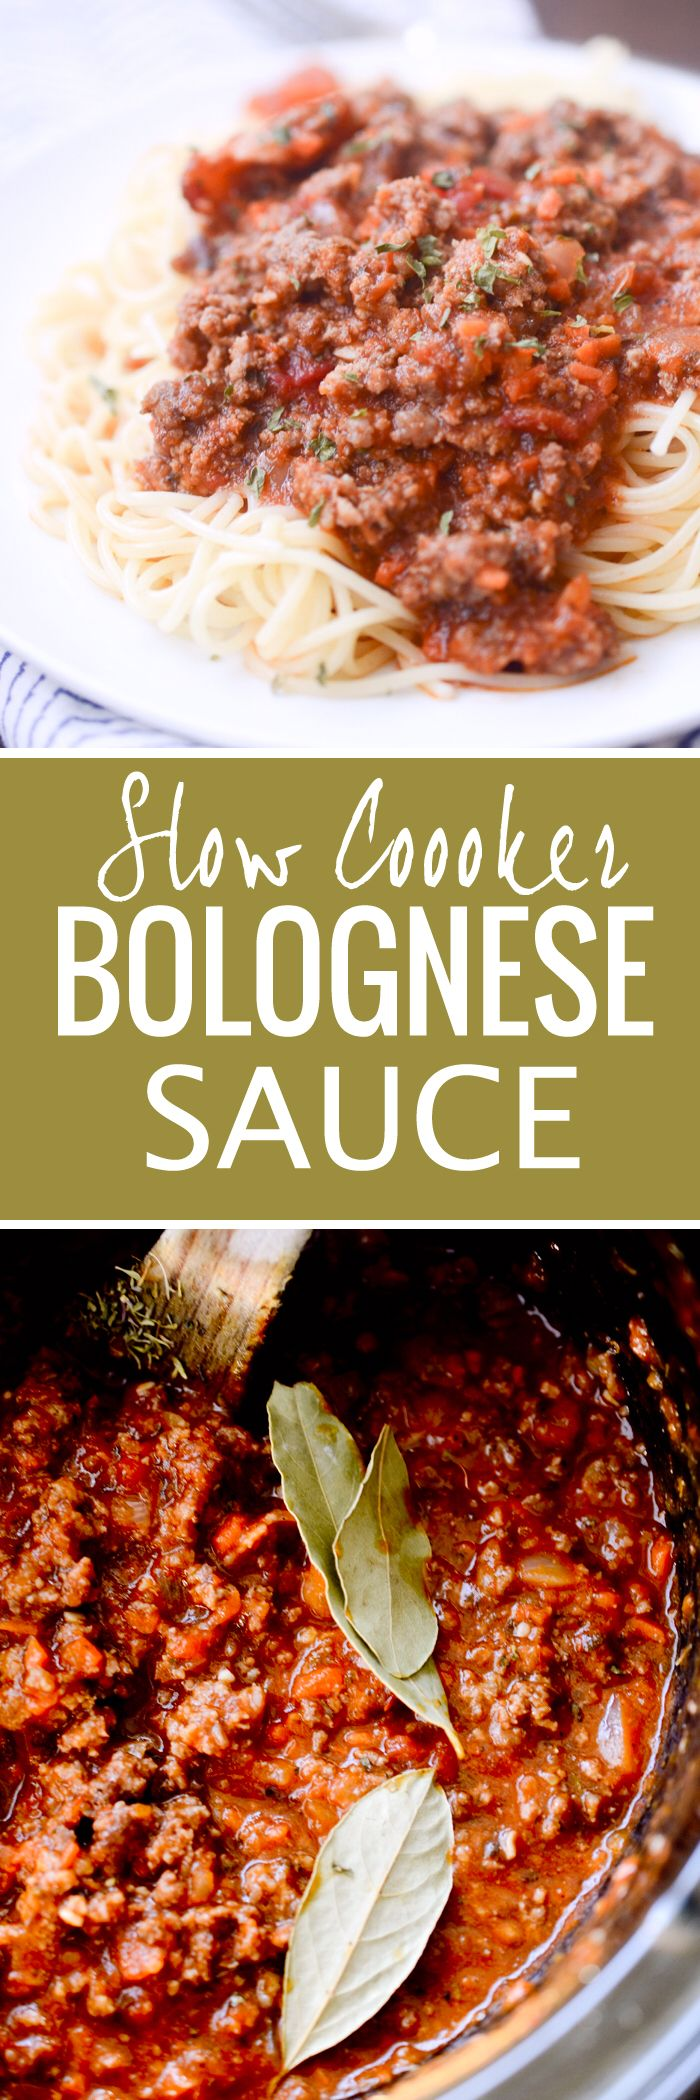 Slow Cooker Bolognese Sauce - Recipe Diaries